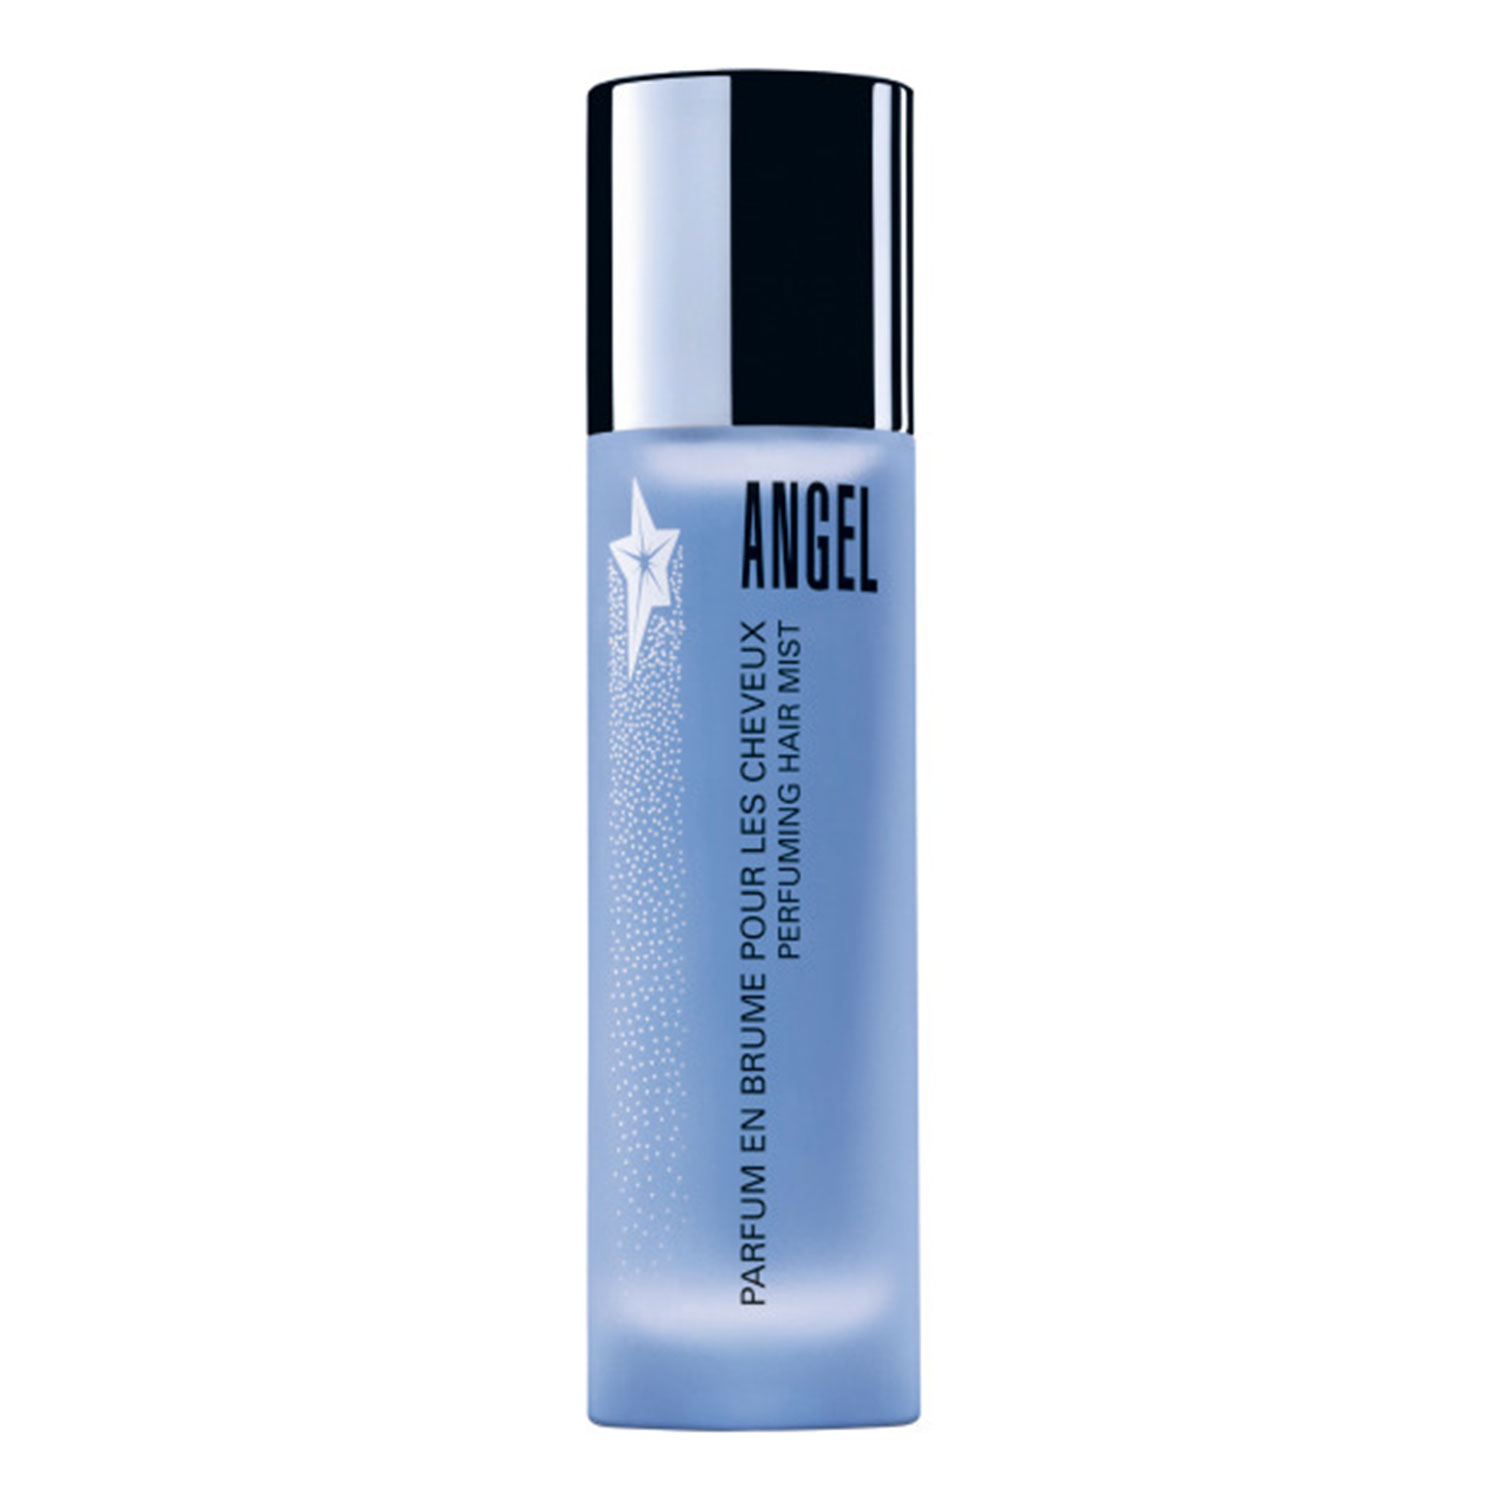 Angel - Hair Mist